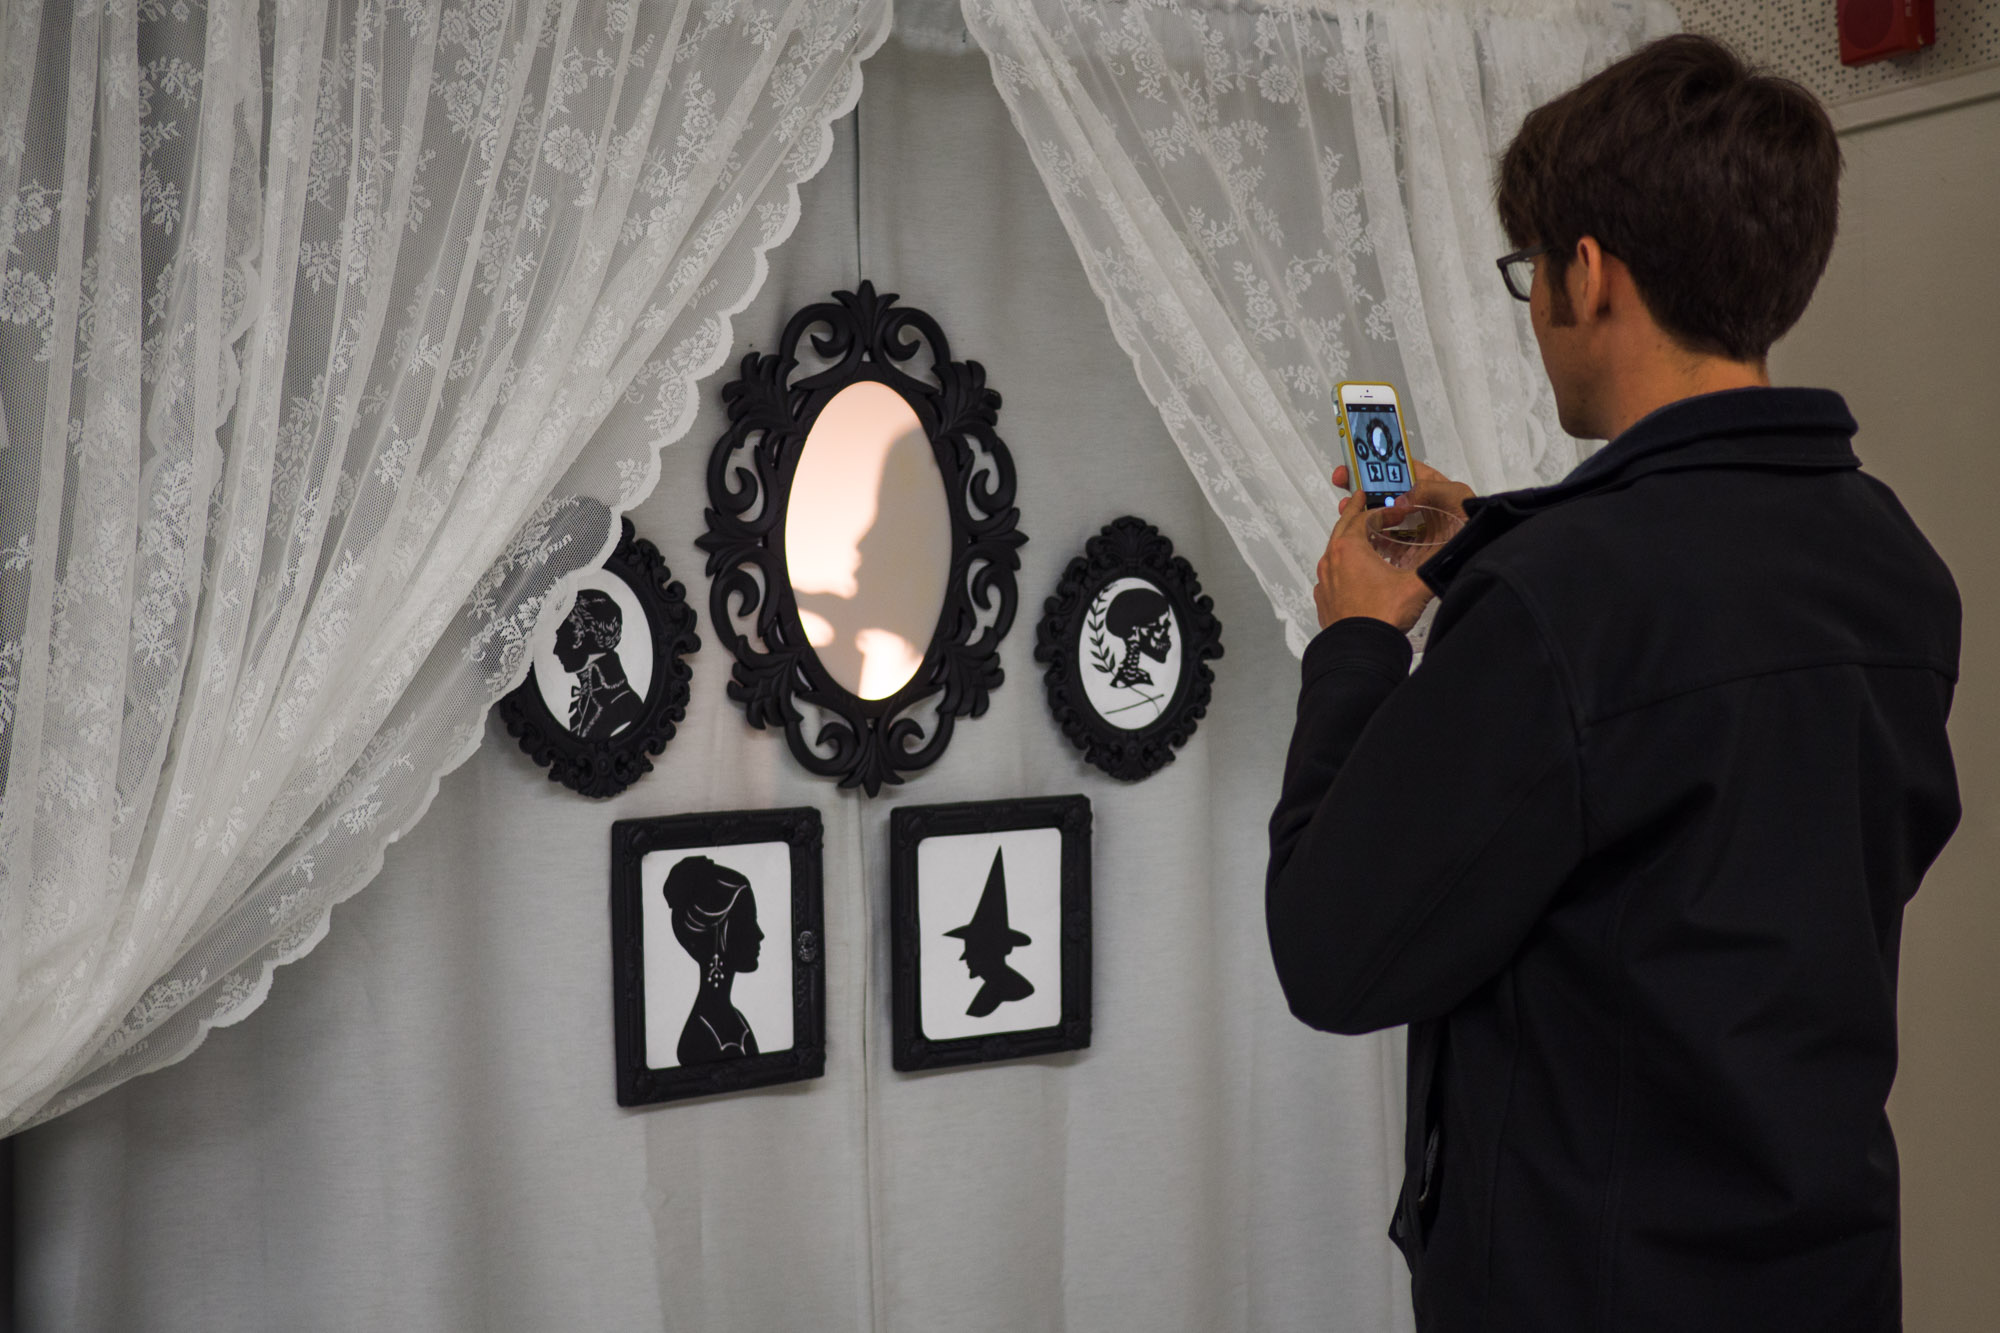 Guests step inside the booth and into the shadows to create a silhouette profile picture.